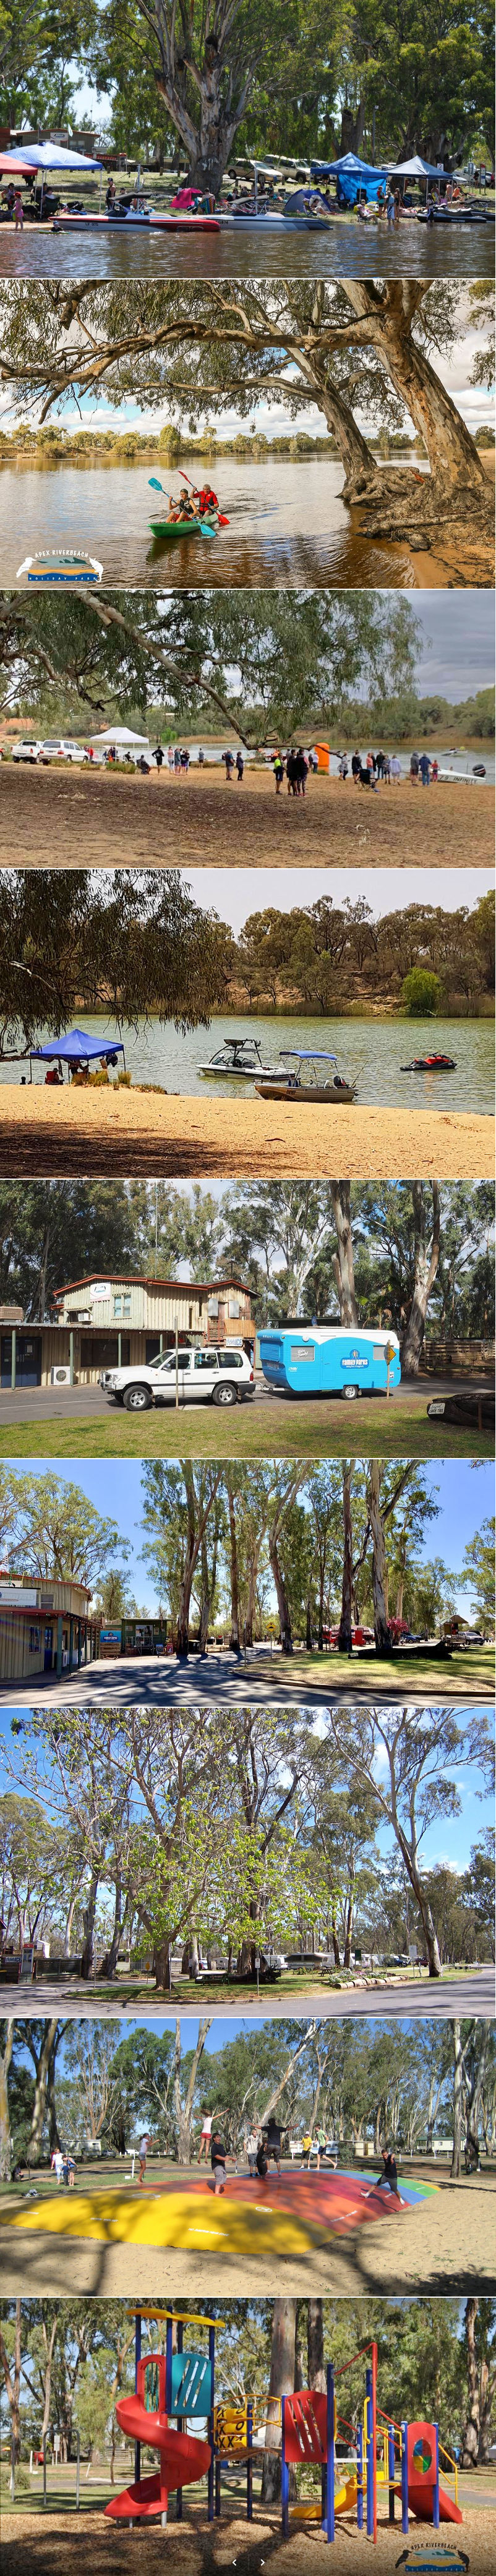 Apex RiverBeach Holiday Park - Grounds and facilities